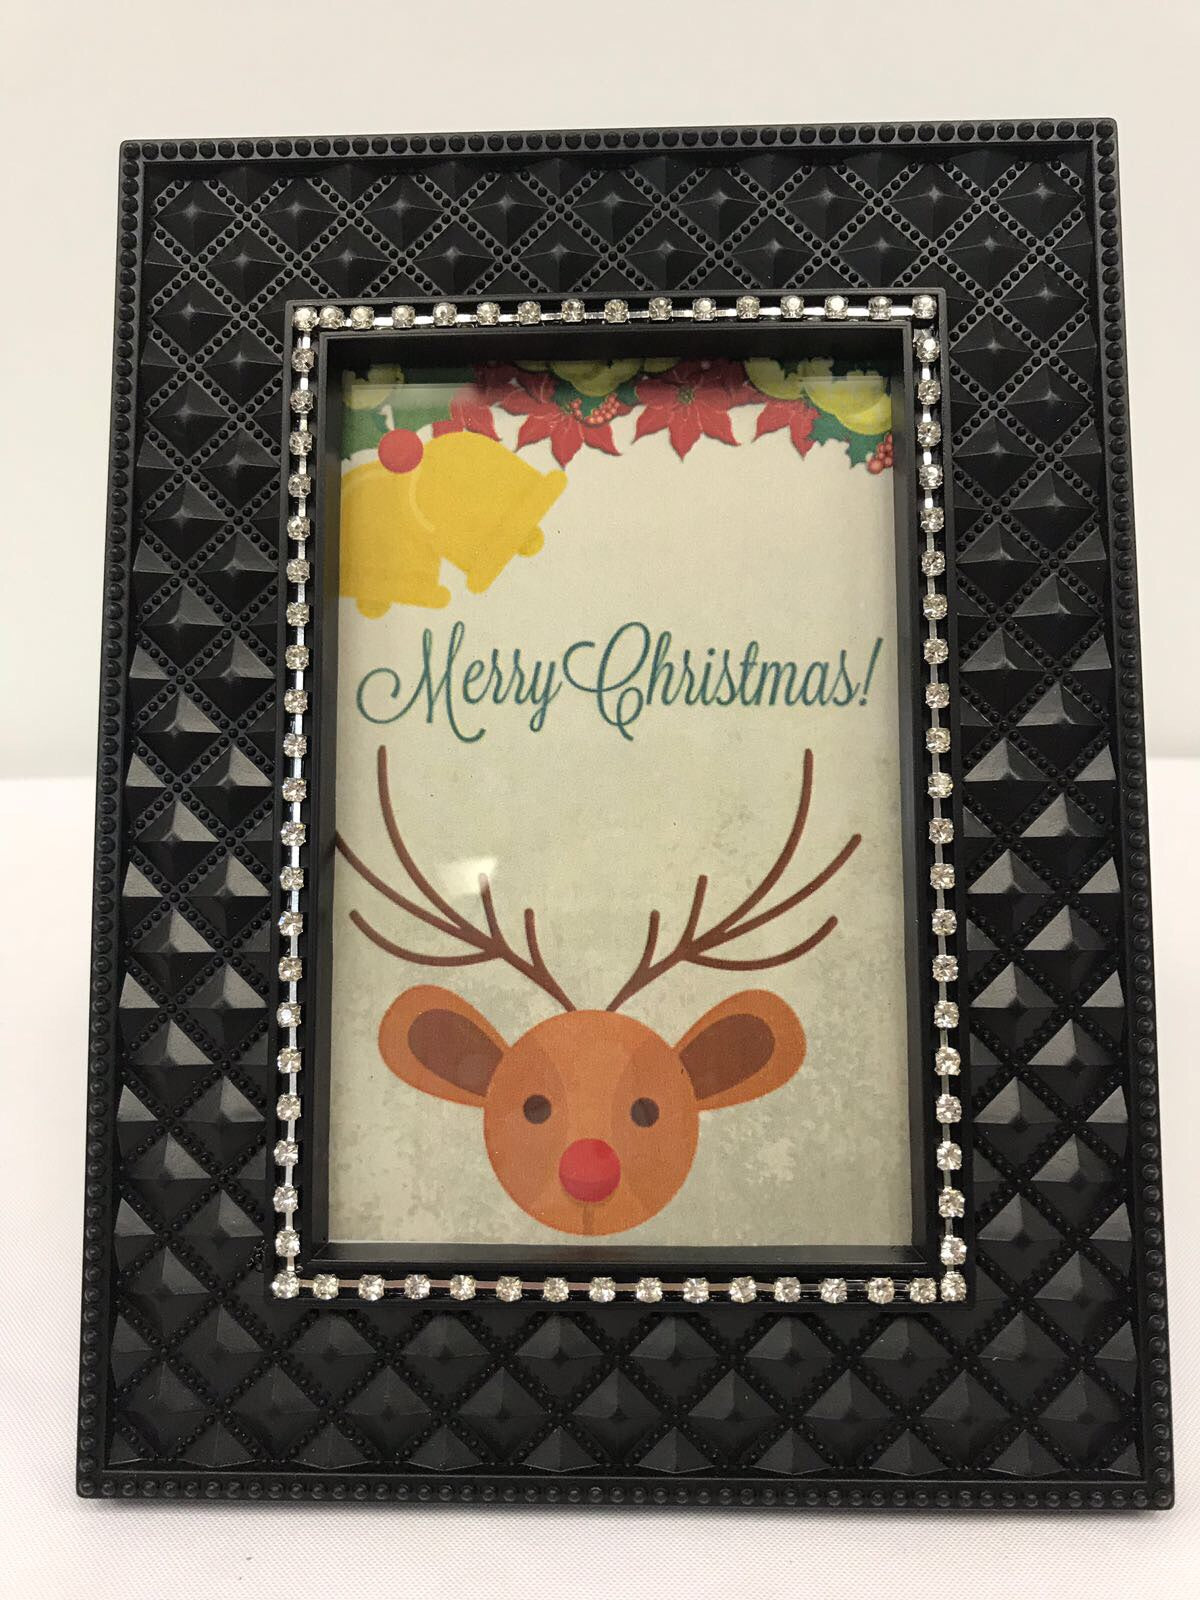 Merry Christmas Reindeer DIY Frame